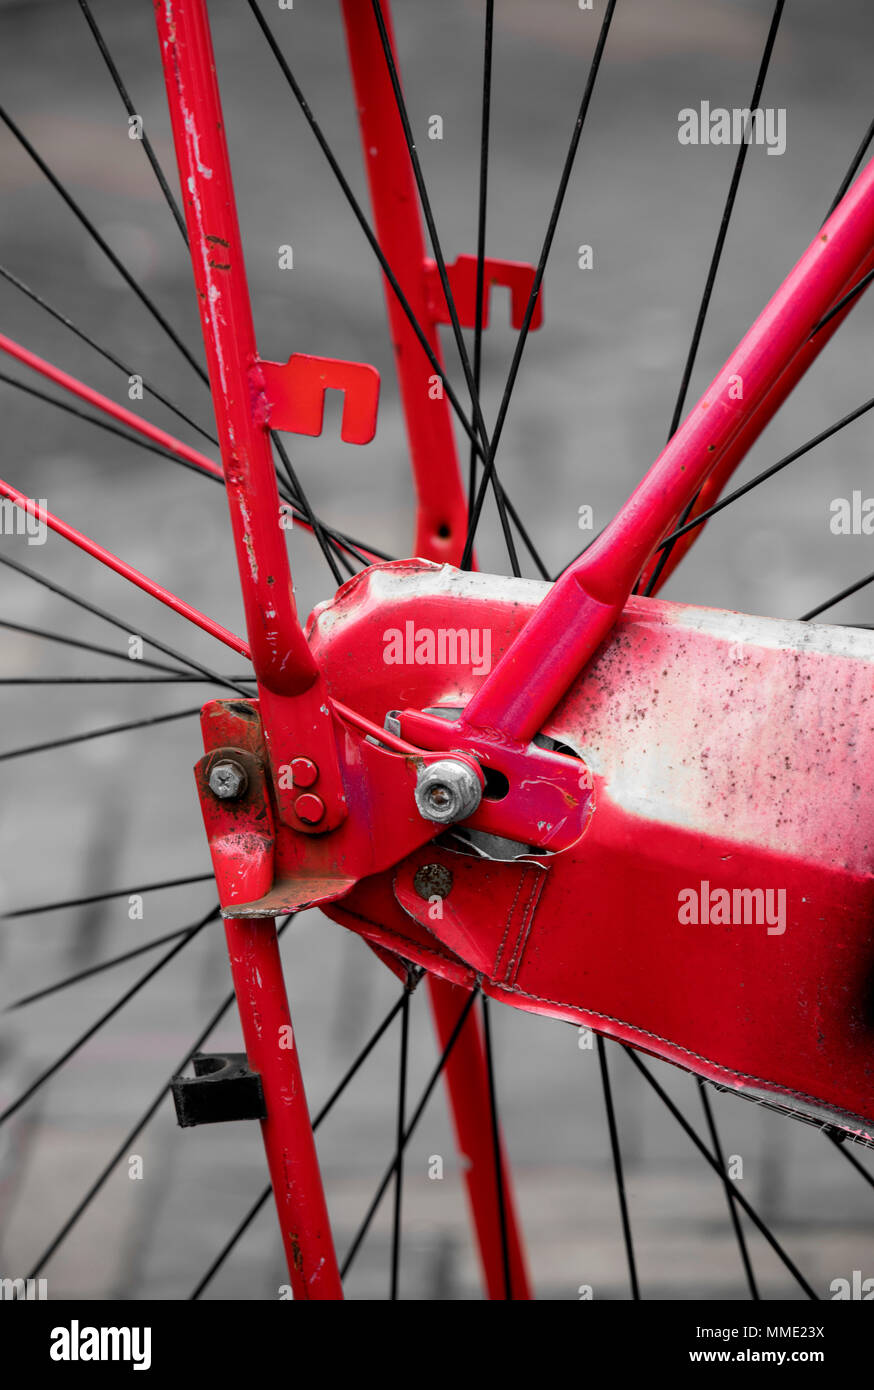 Detail of the rear wheel of a red bicycle - Stock Image